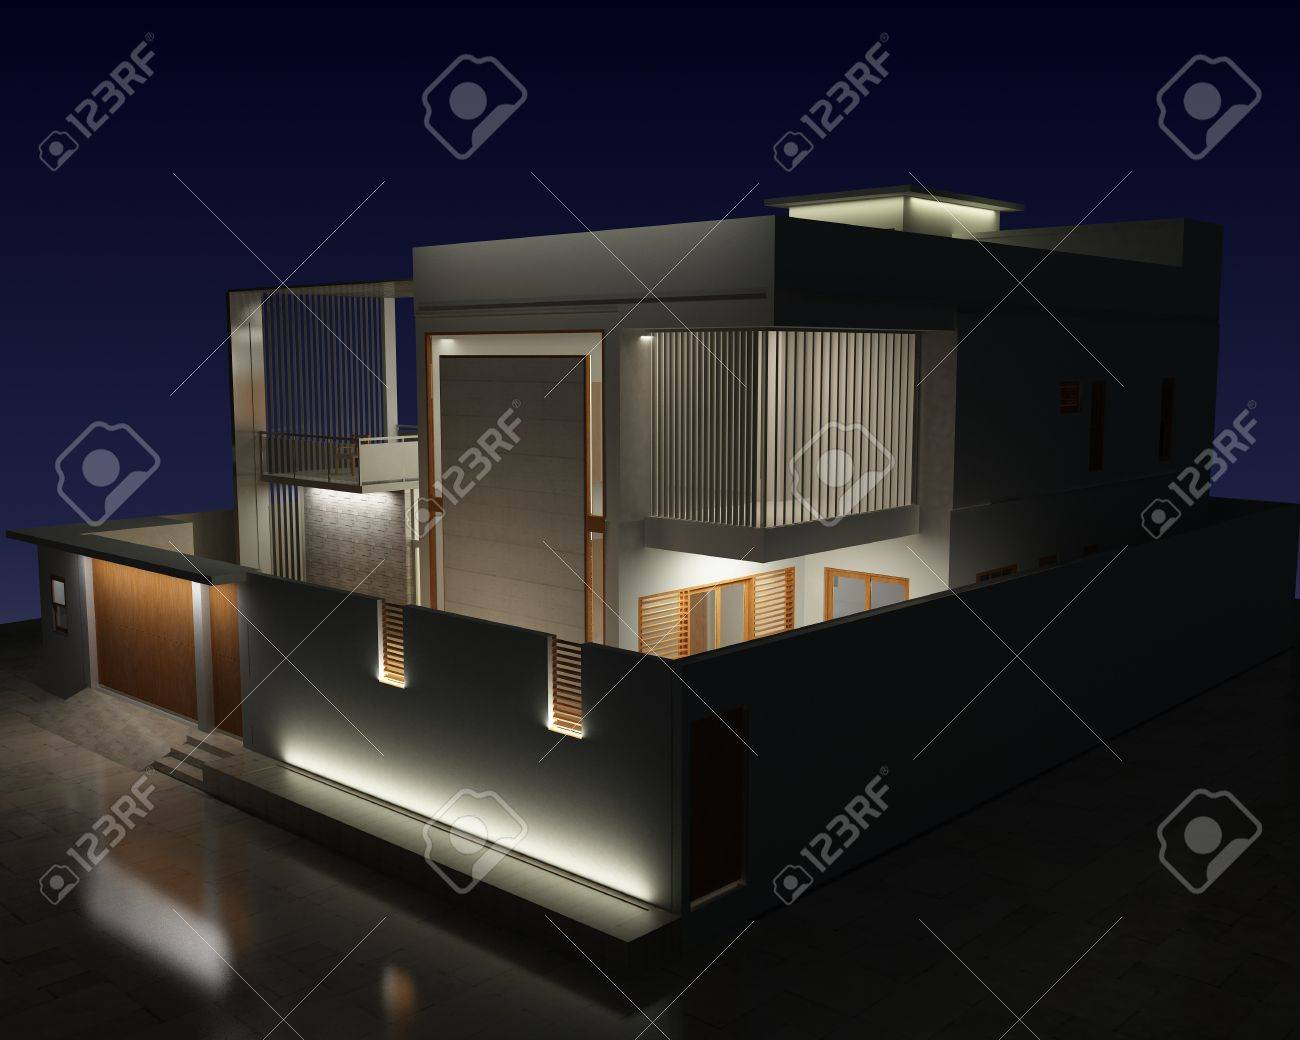 3d night view of a residential exterior architecture - 20302149